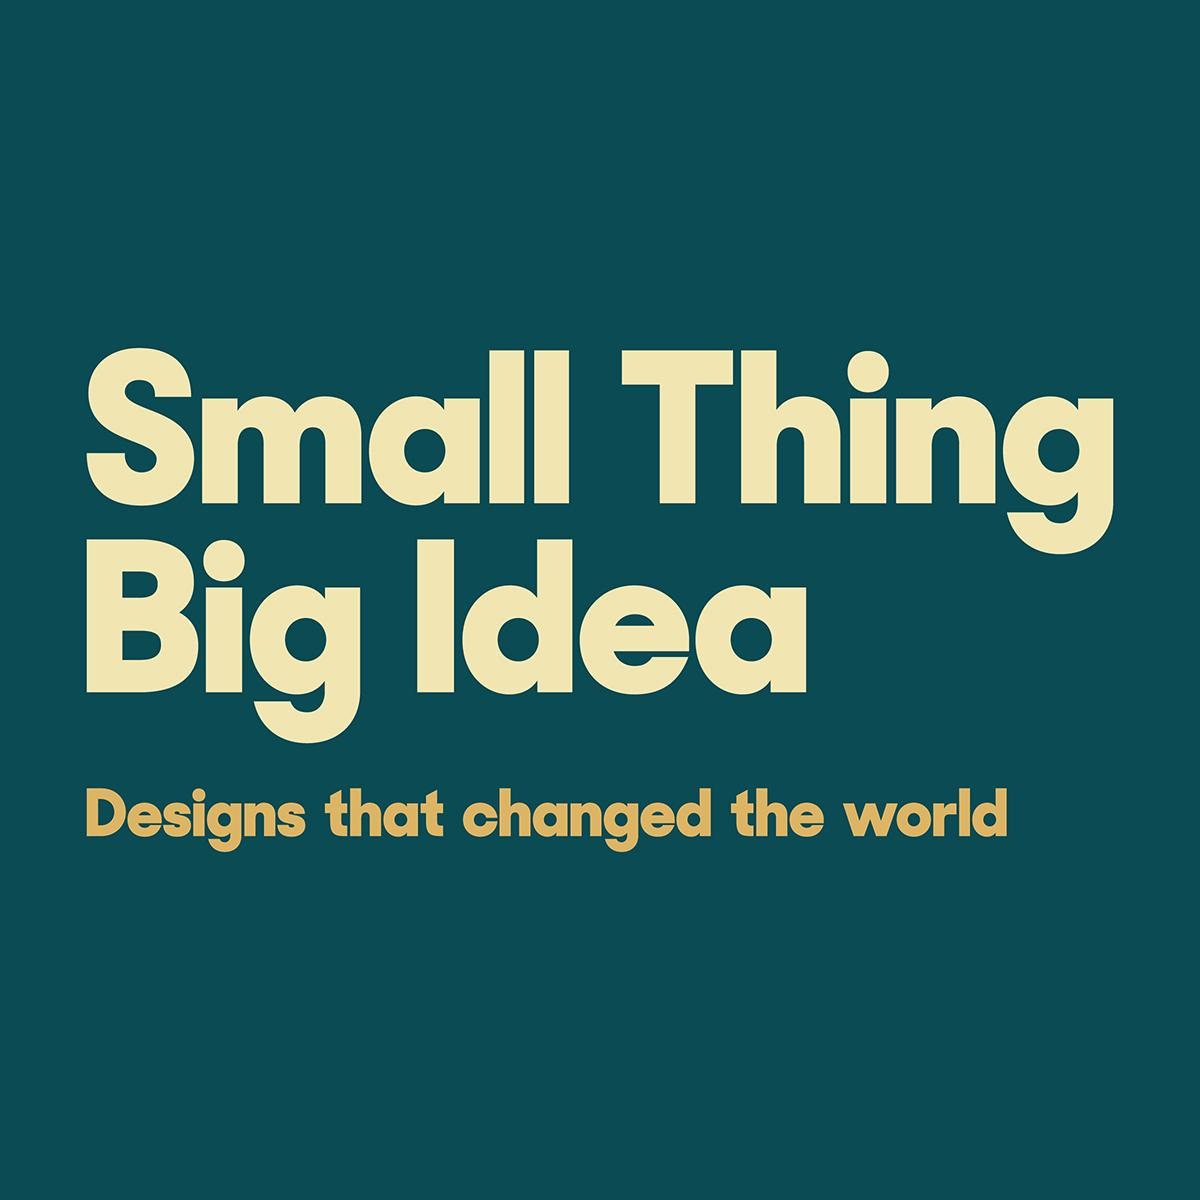 Small Thing Big Idea